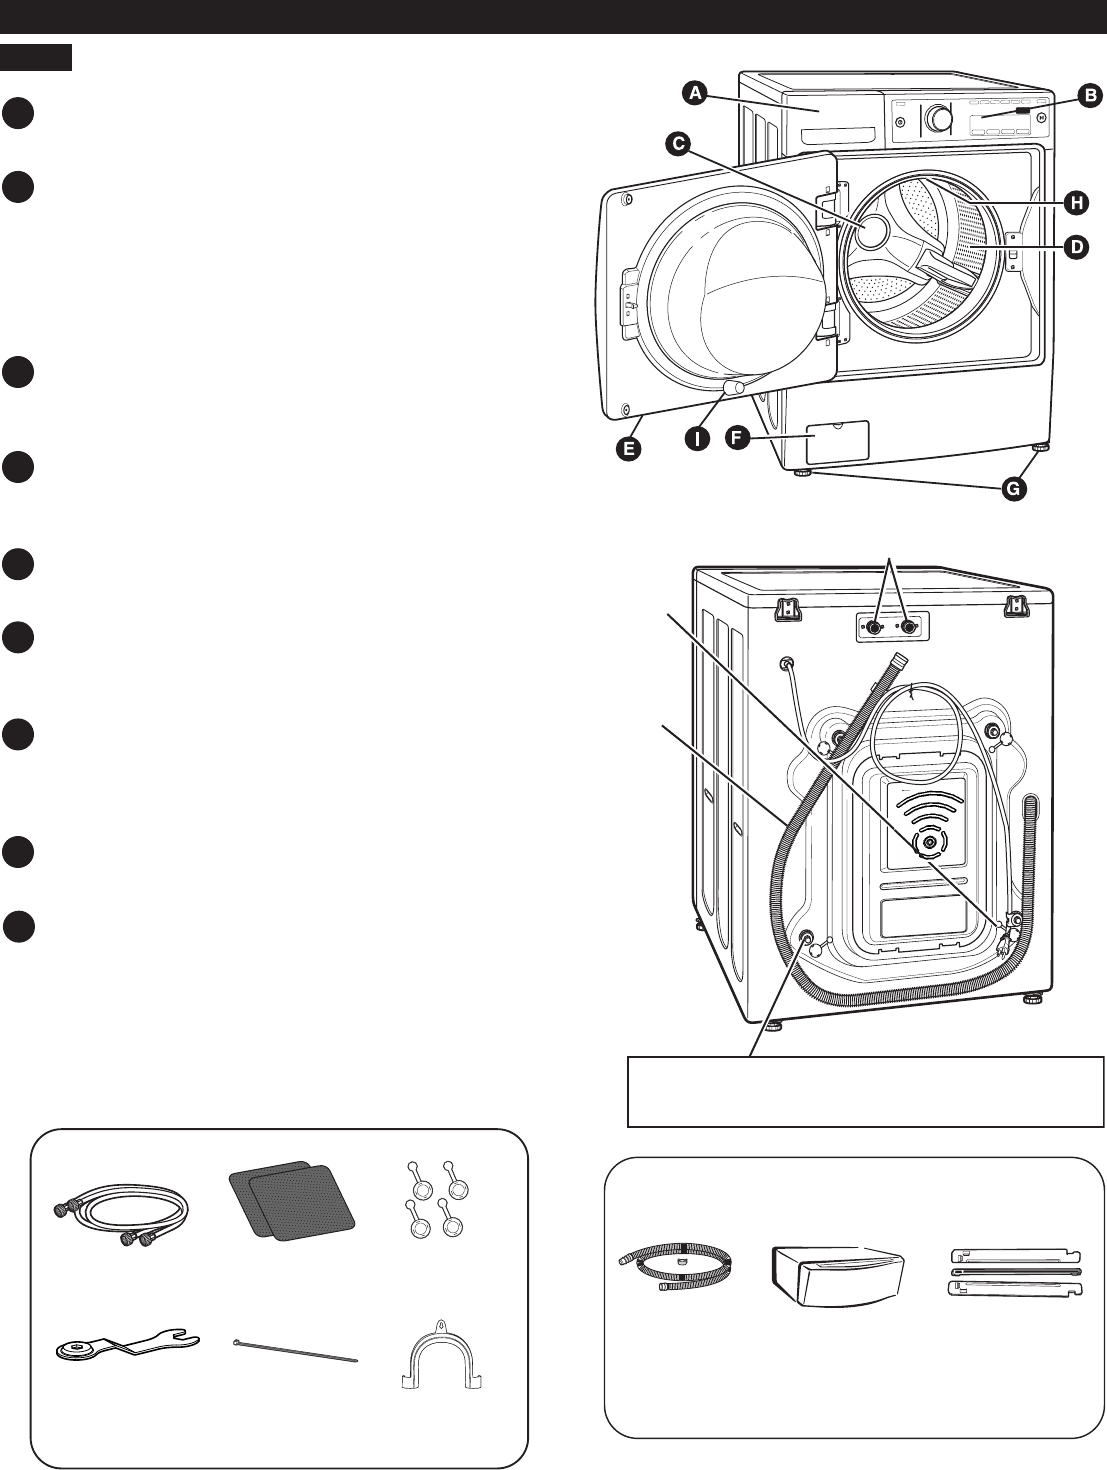 Page 6 of Kenmore Washer 796.4172# User Guide